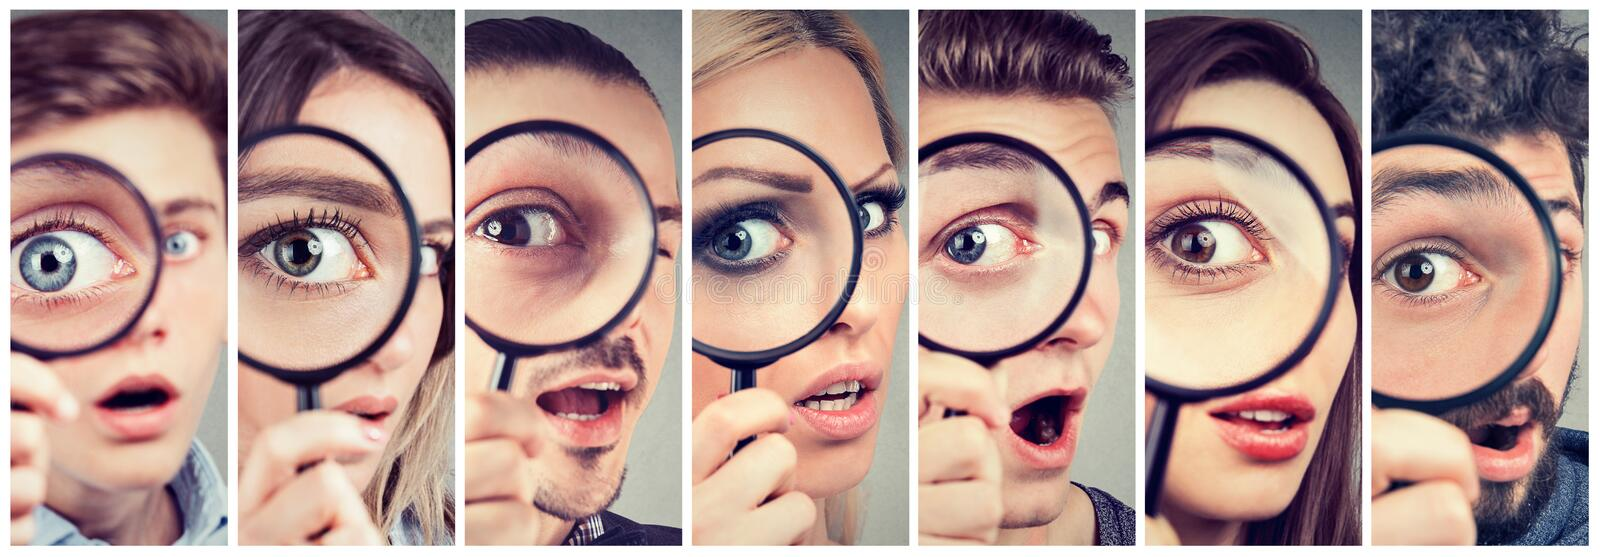 Group of curious women and men looking through a magnifying glass royalty free stock photos